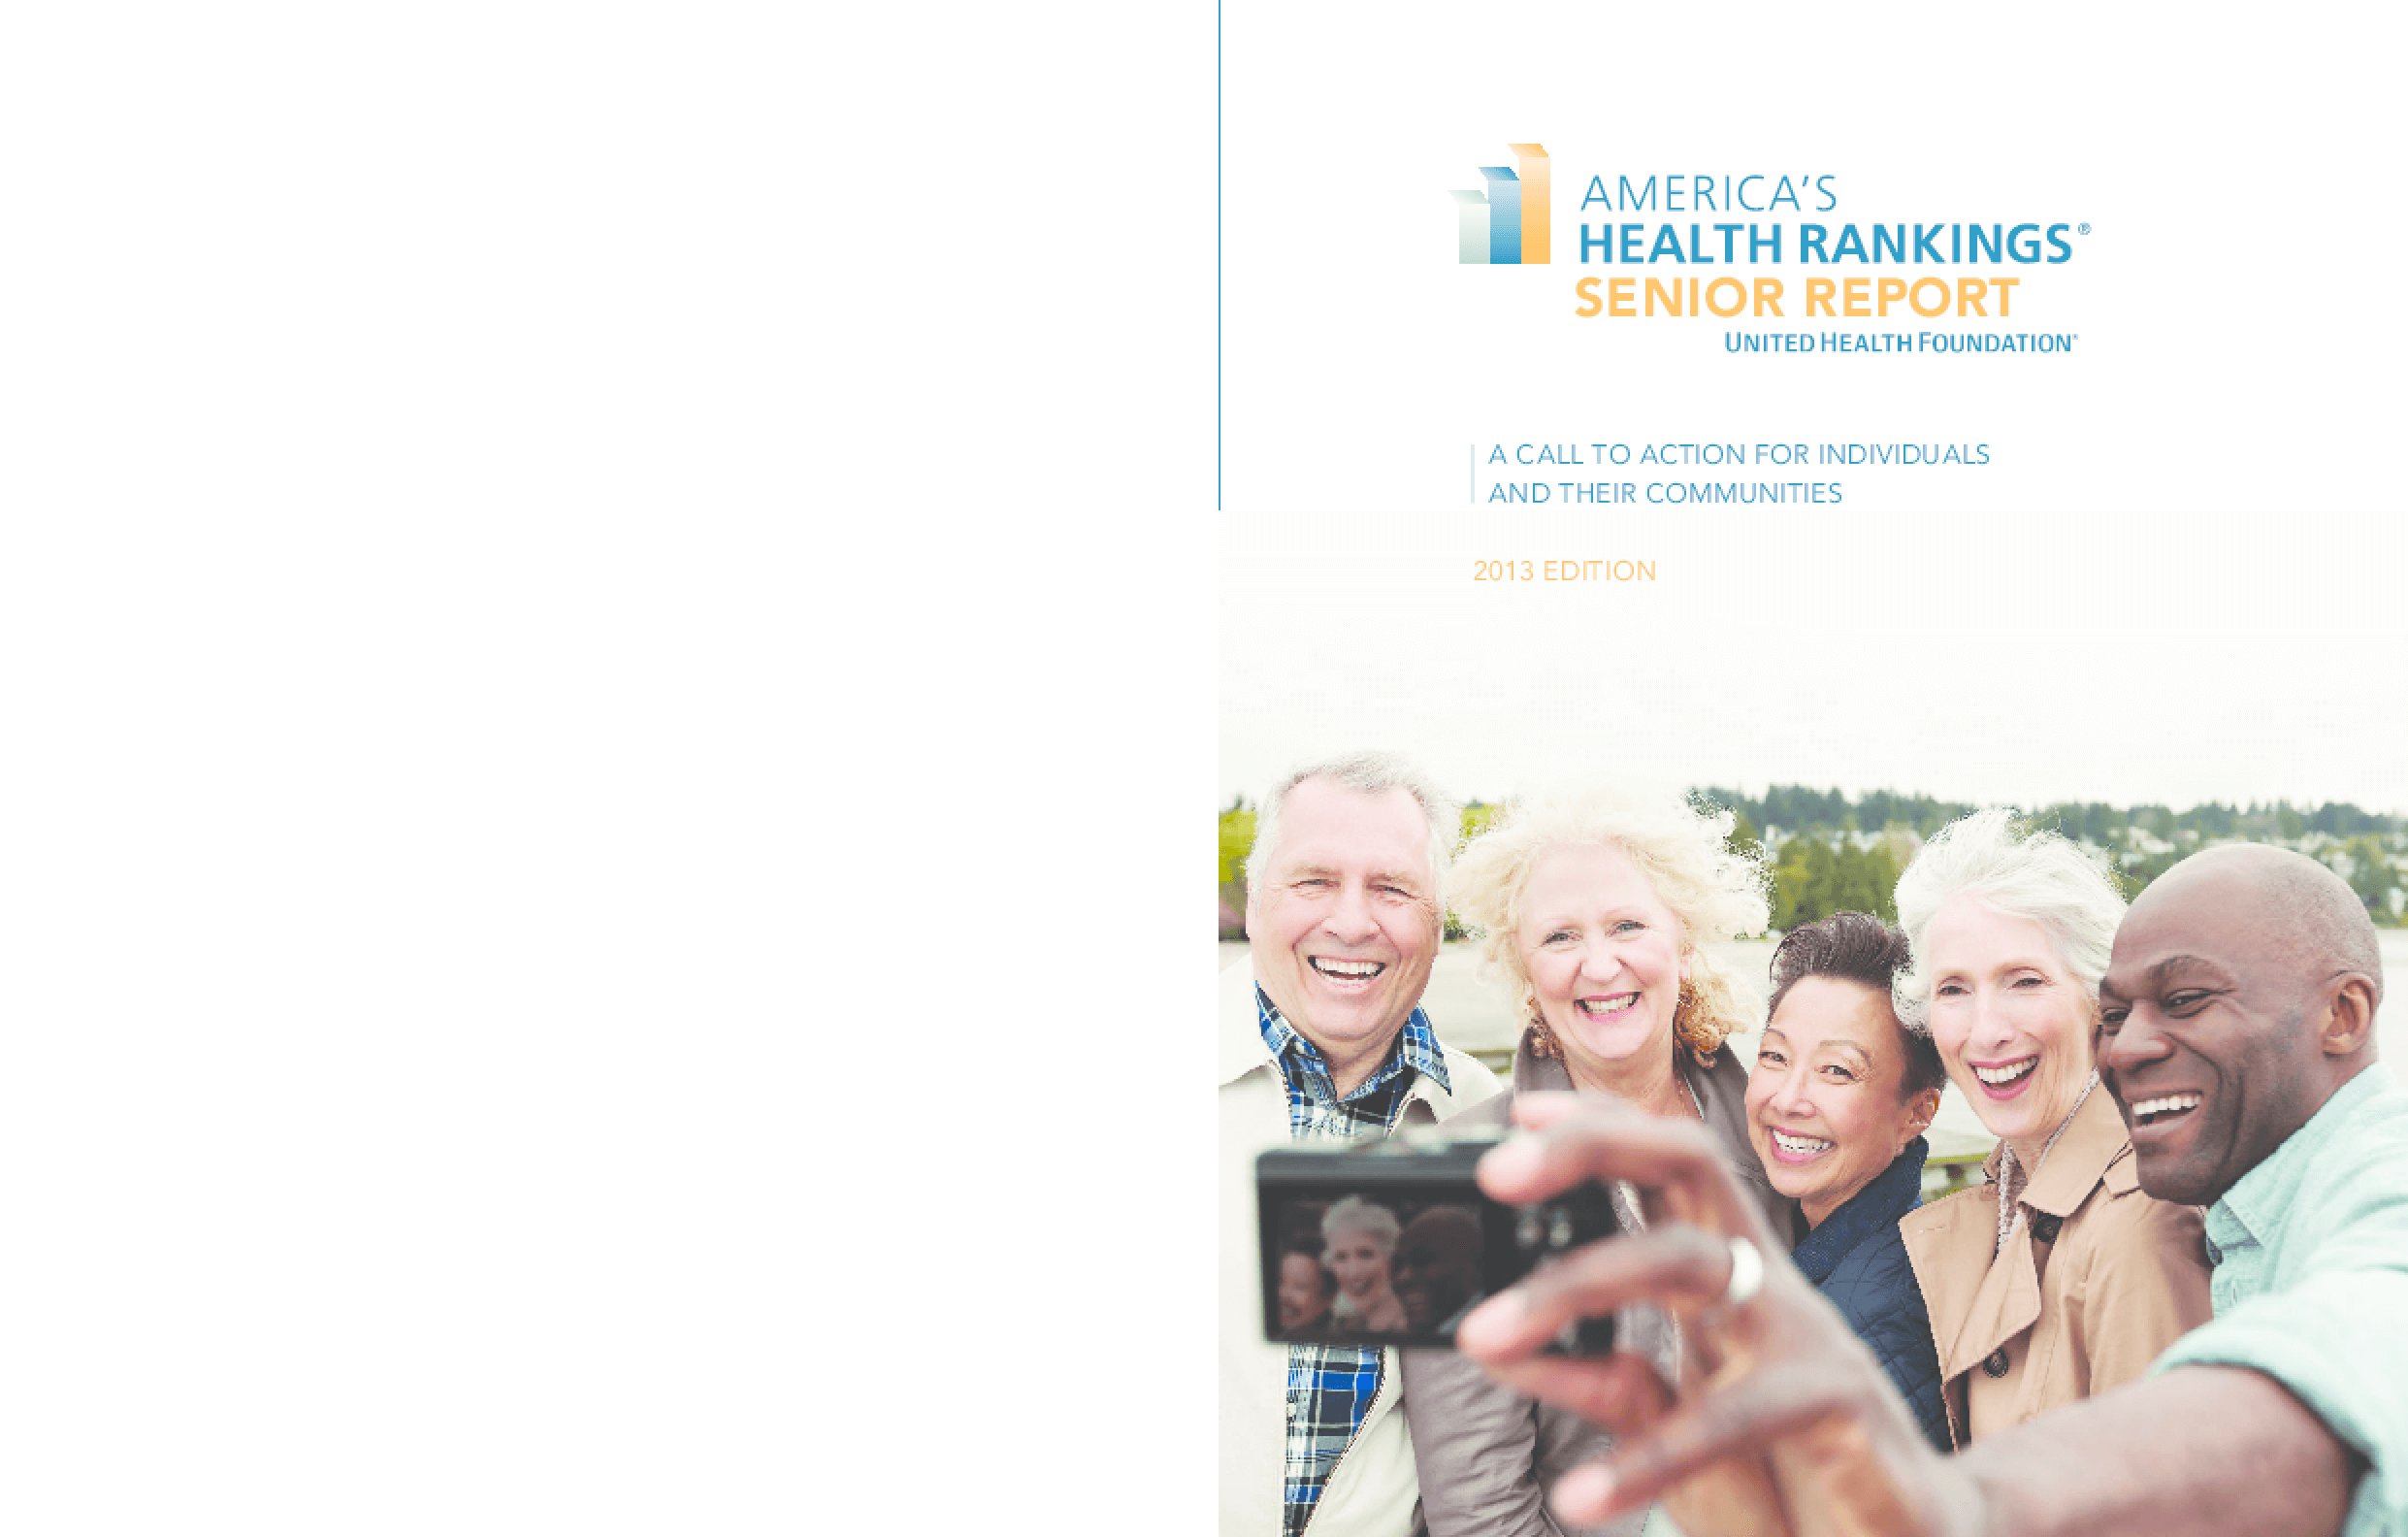 America's Health Rankings Senior Report: A Call to Action for Individuals and Their Communities, 2013 Edition